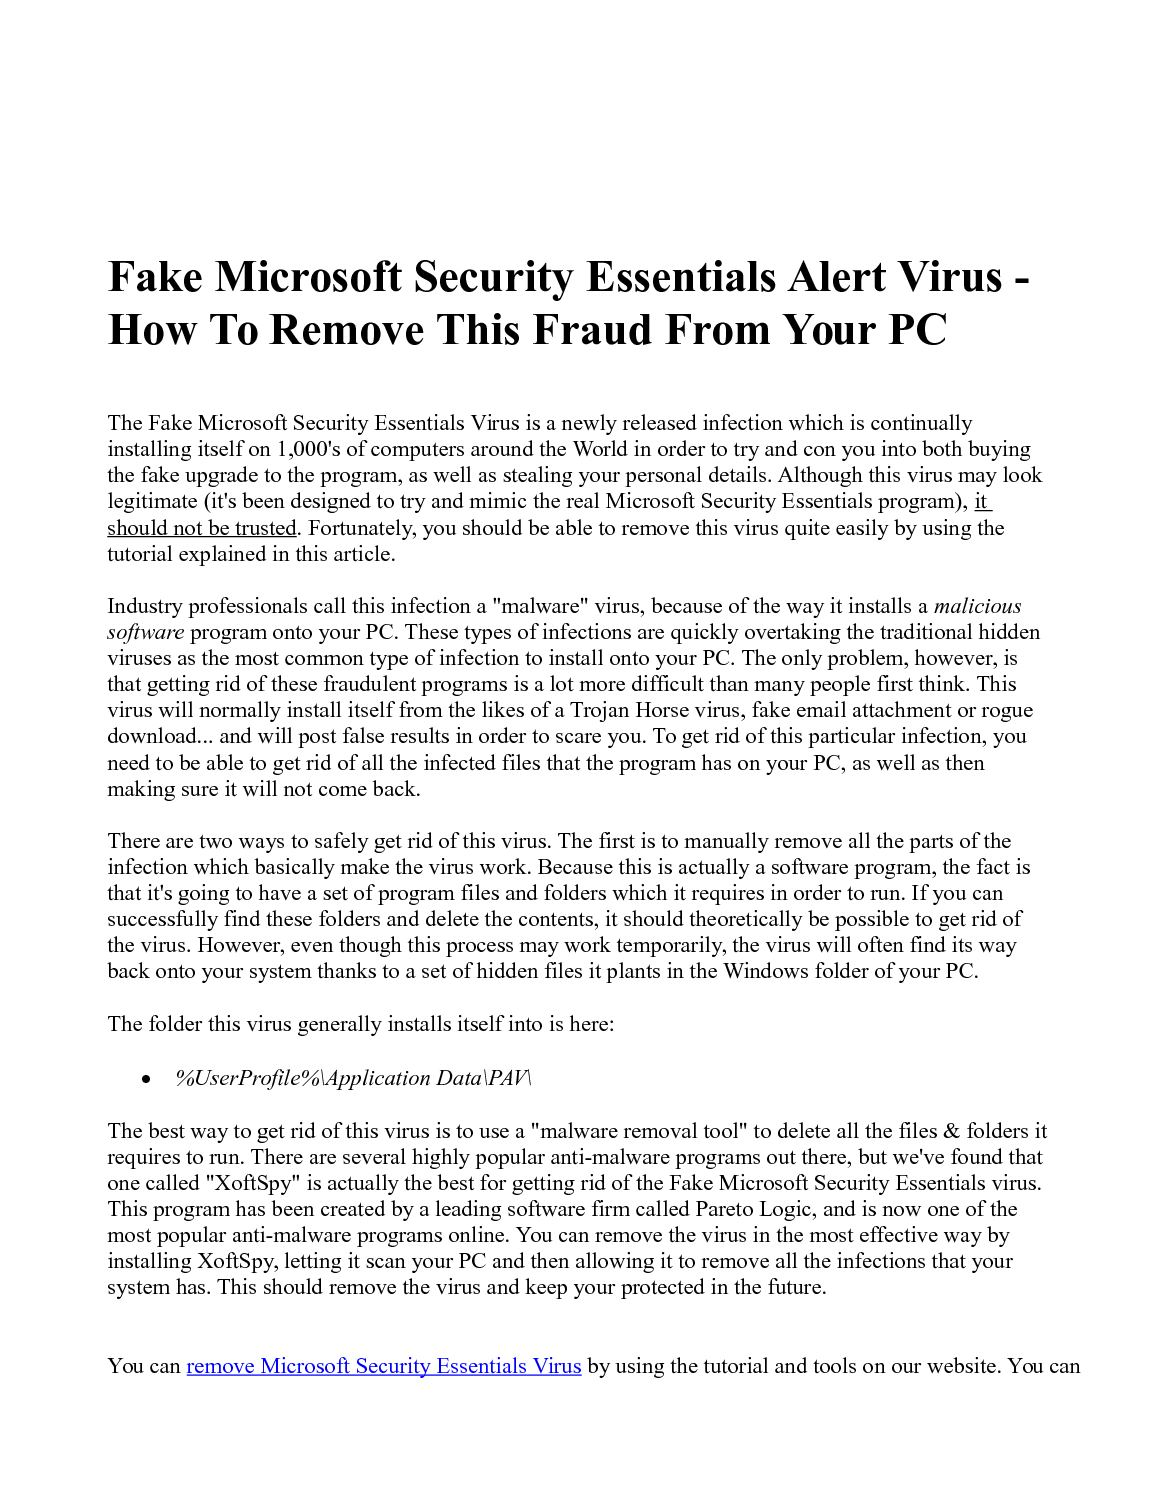 Calaméo - Fake Microsoft Security Essentials Alert Virus docx